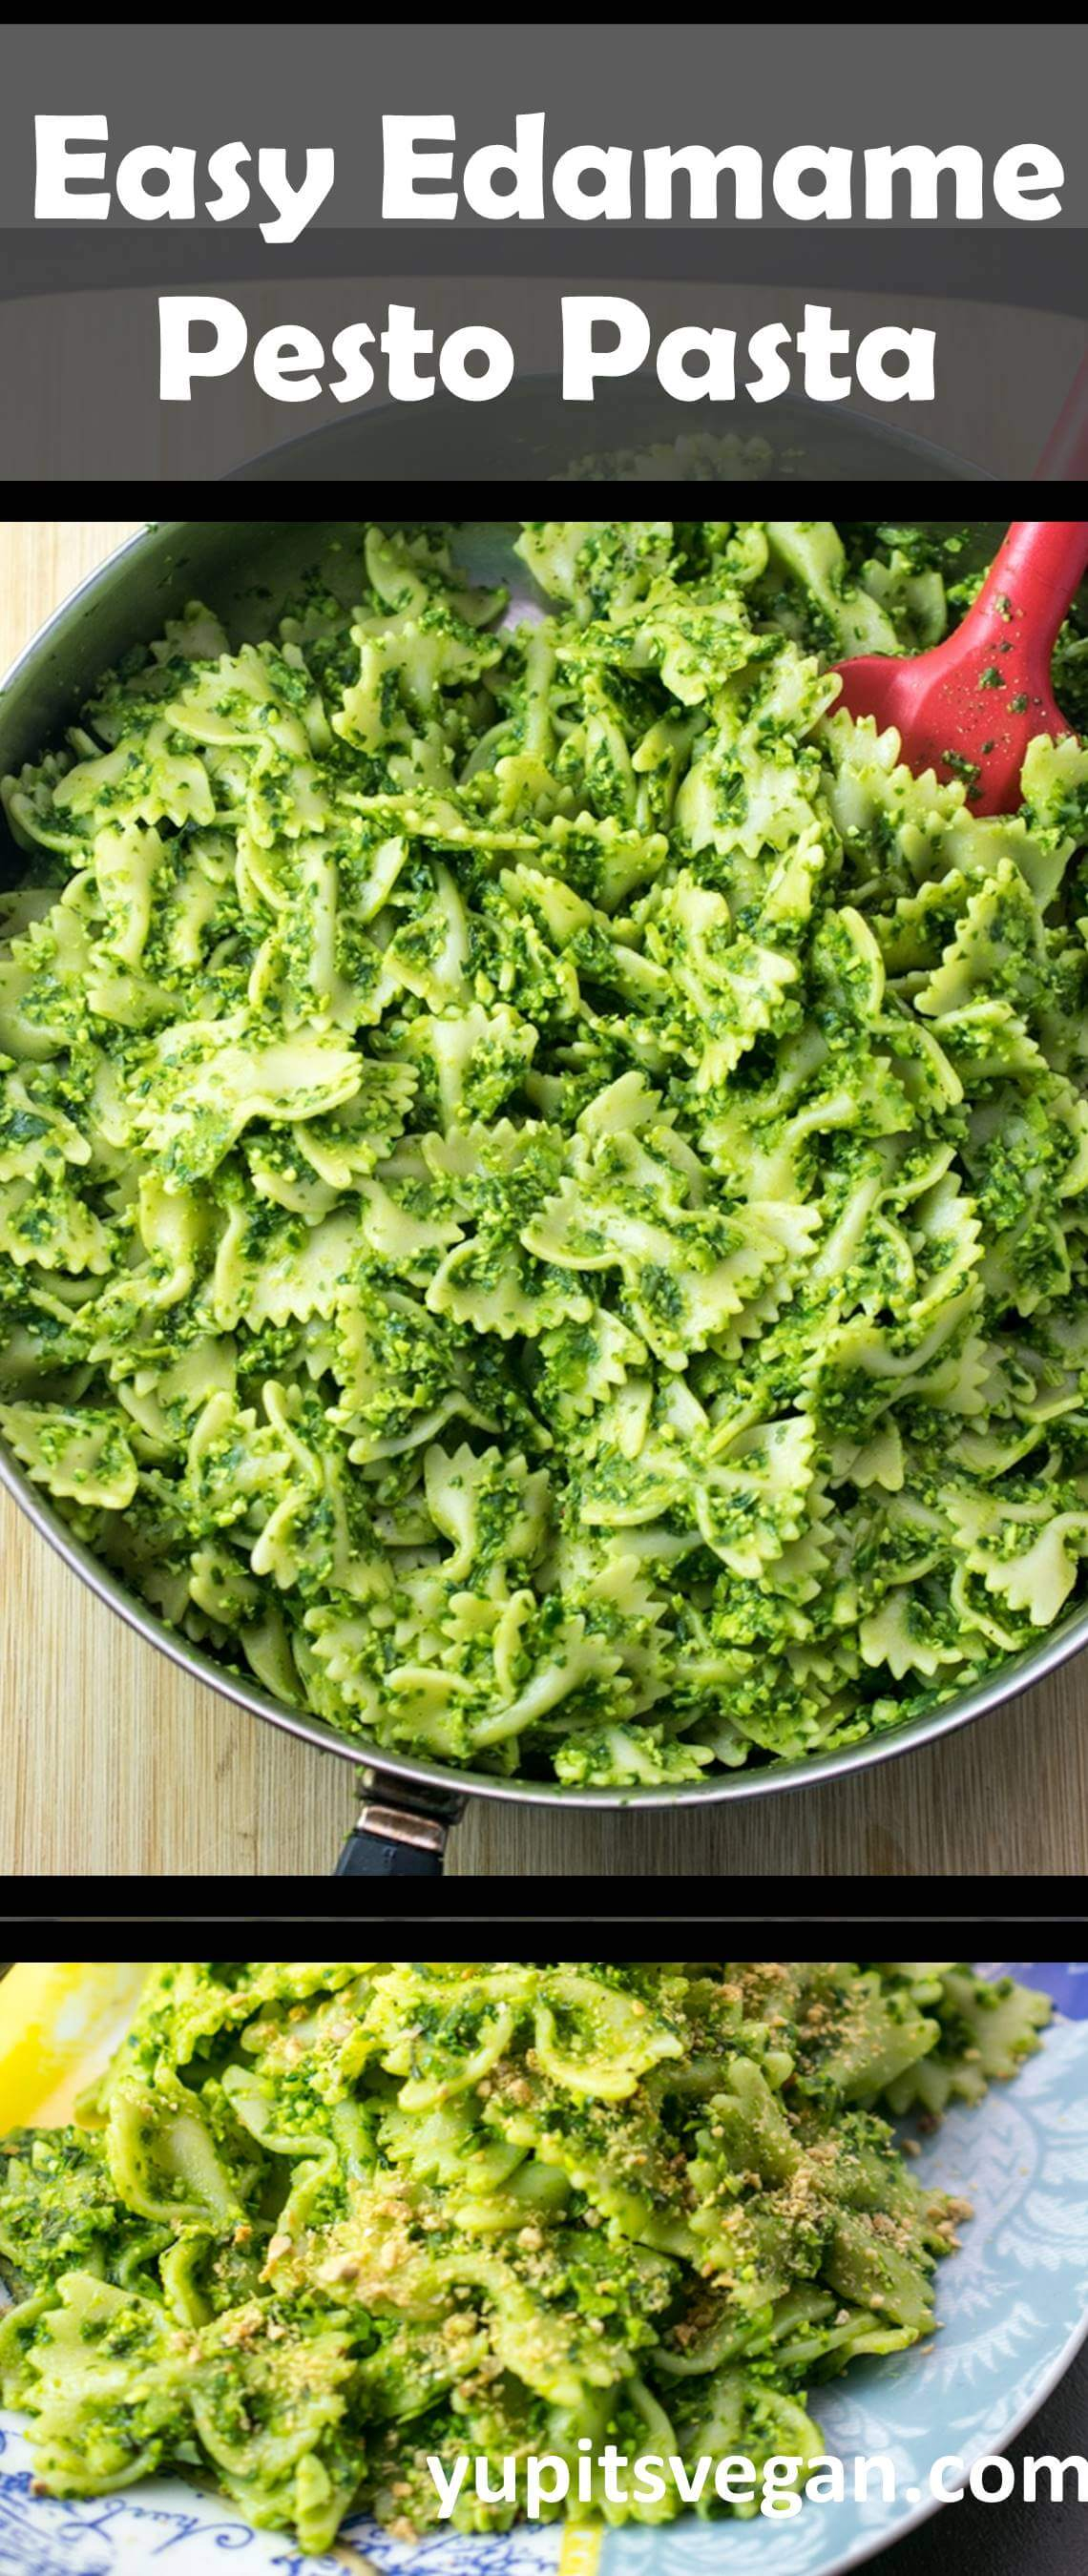 Easy Edamame Pesto Pasta | Protein-packed, vegan, gluten-free option for this edamame basil pesto made with fresh spinach, garlic and shallot. Healthy and quick, ready in 30 easy minutes!